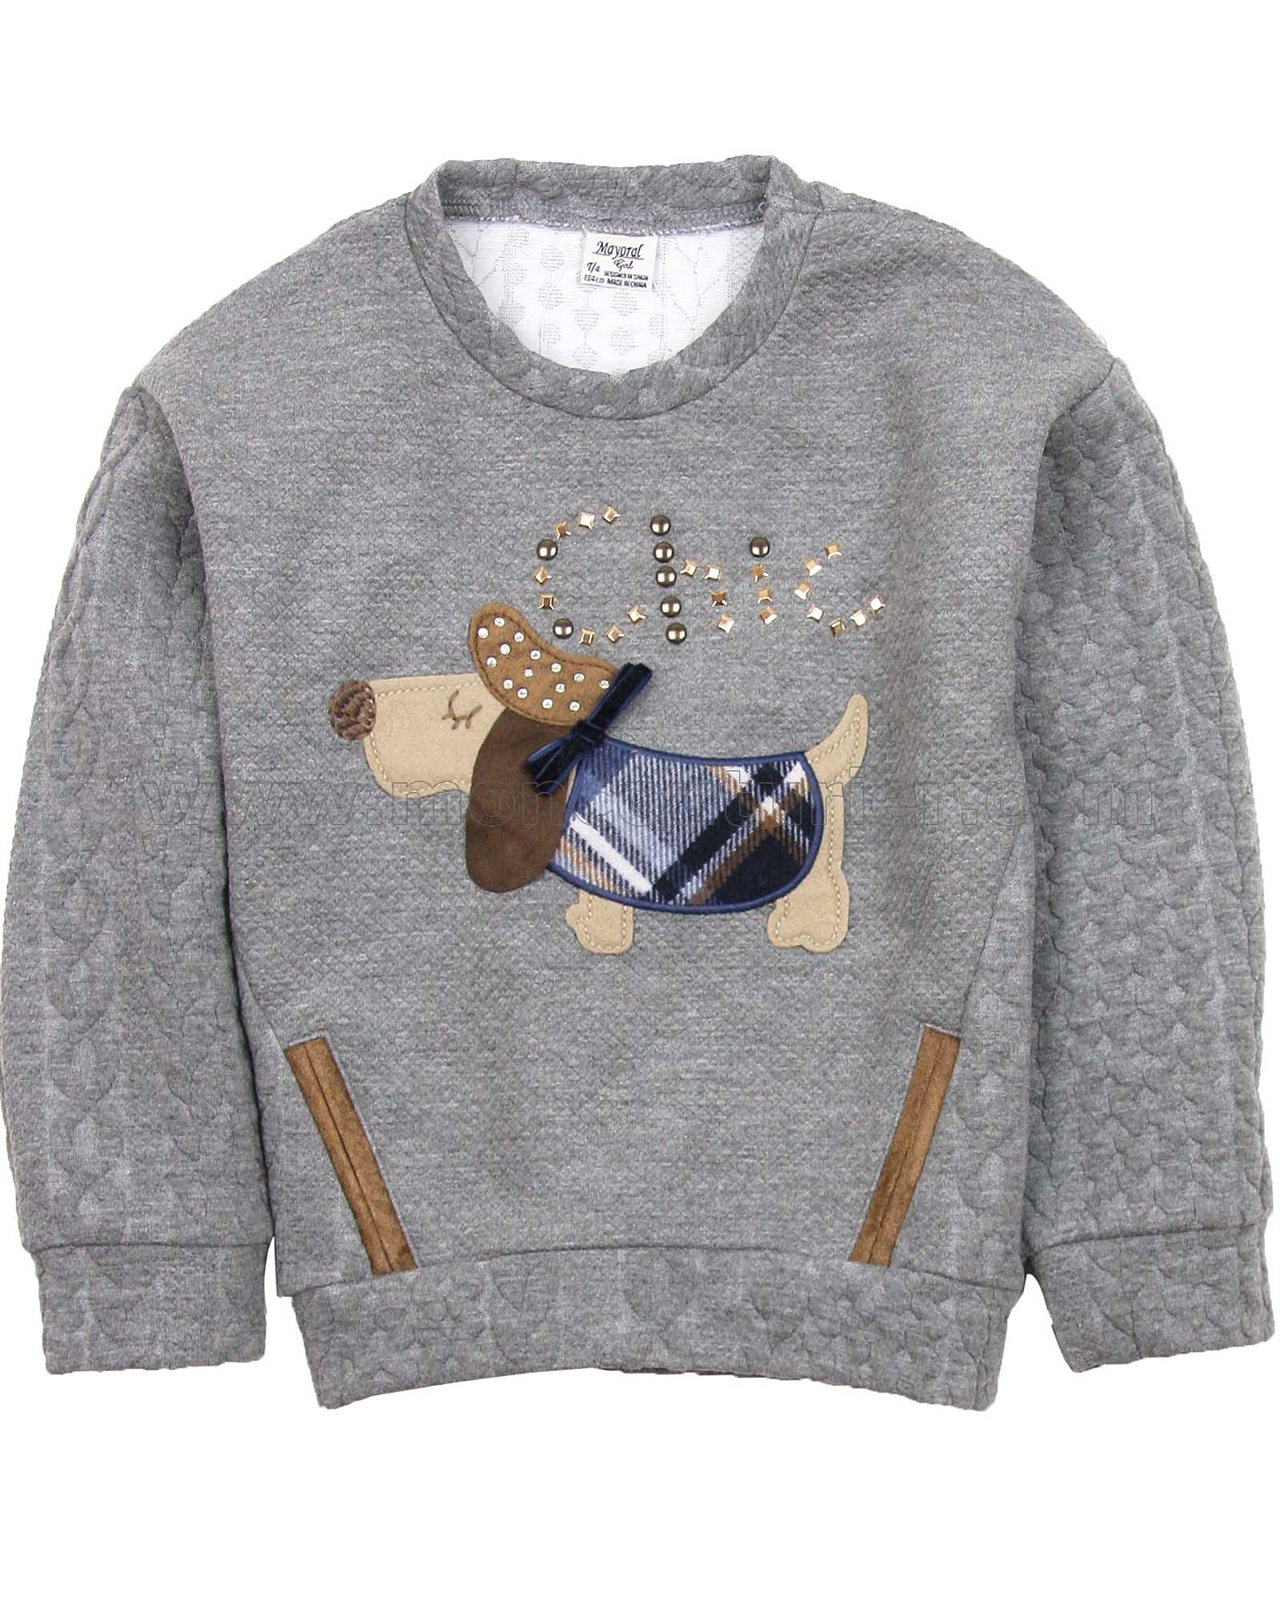 26dfec33b Mayoral Girl s Sweatshirt with Applique - Mayoral - Mayoral Fall ...